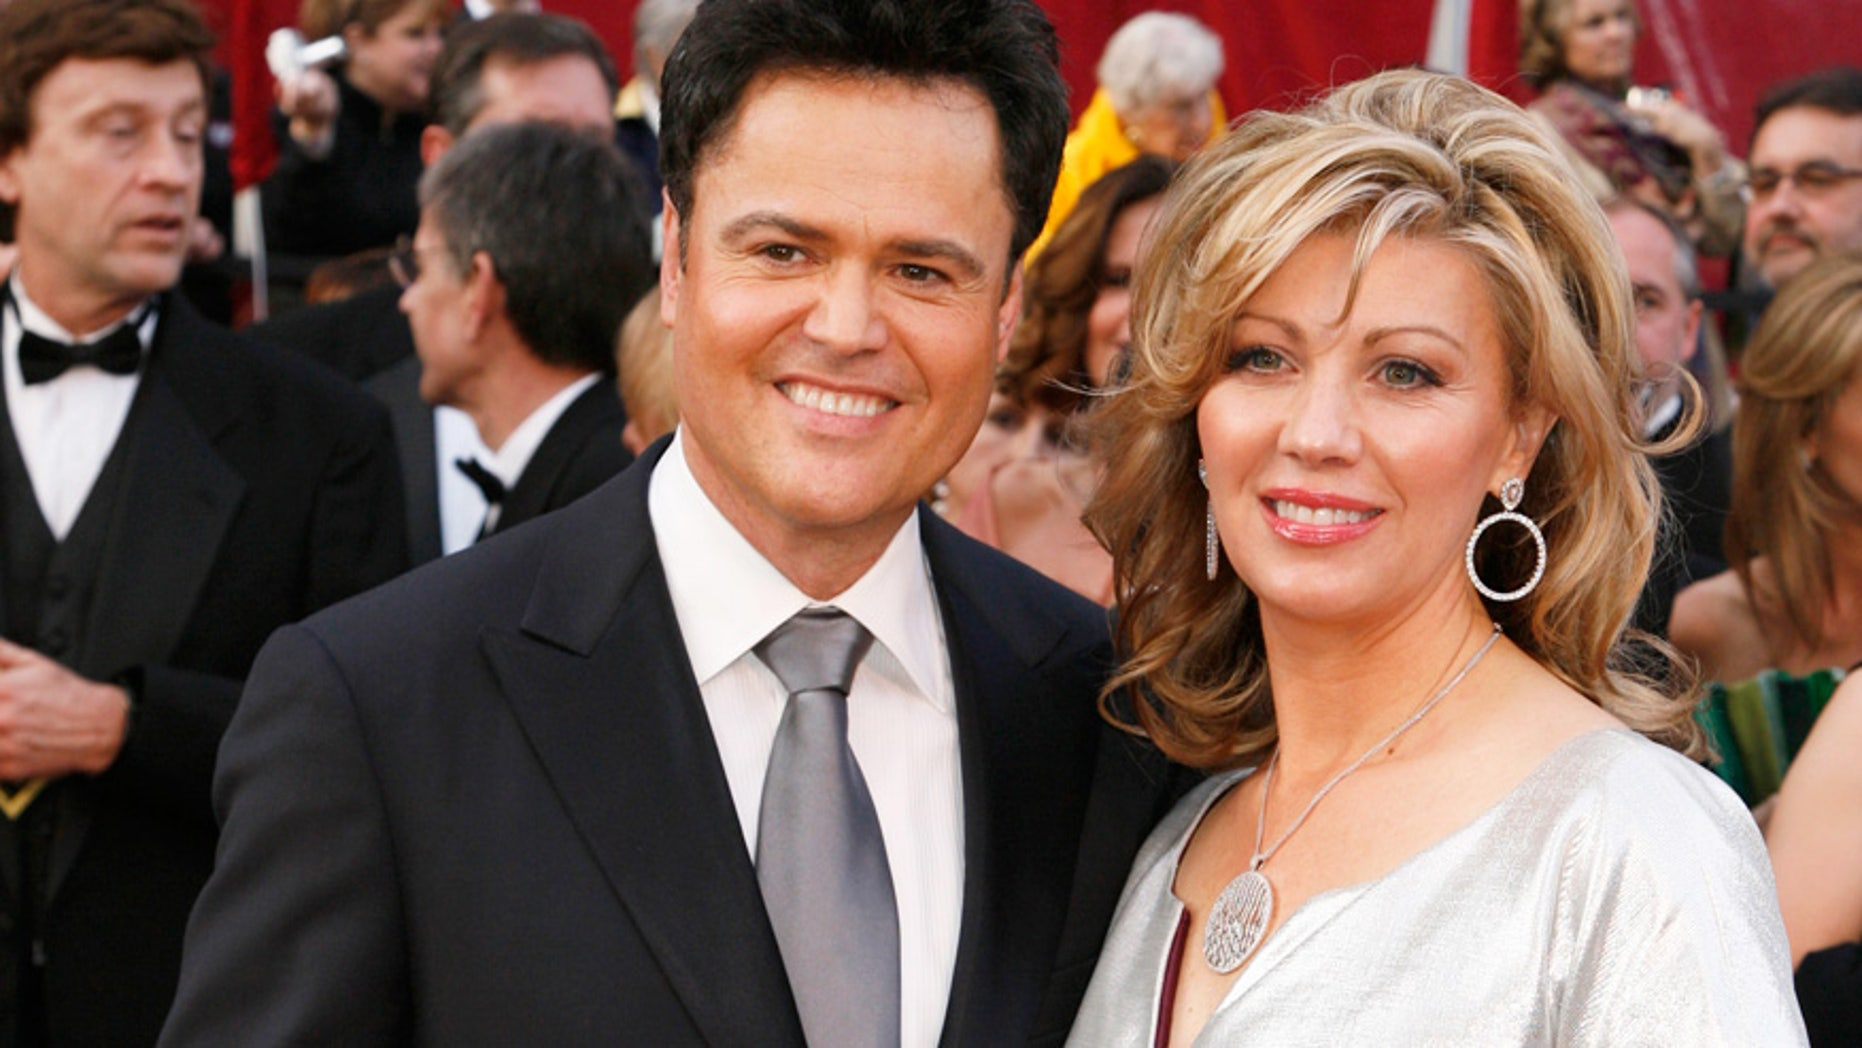 Donny Osmond is set to renew his vows with wife of 39 years, Debbie.